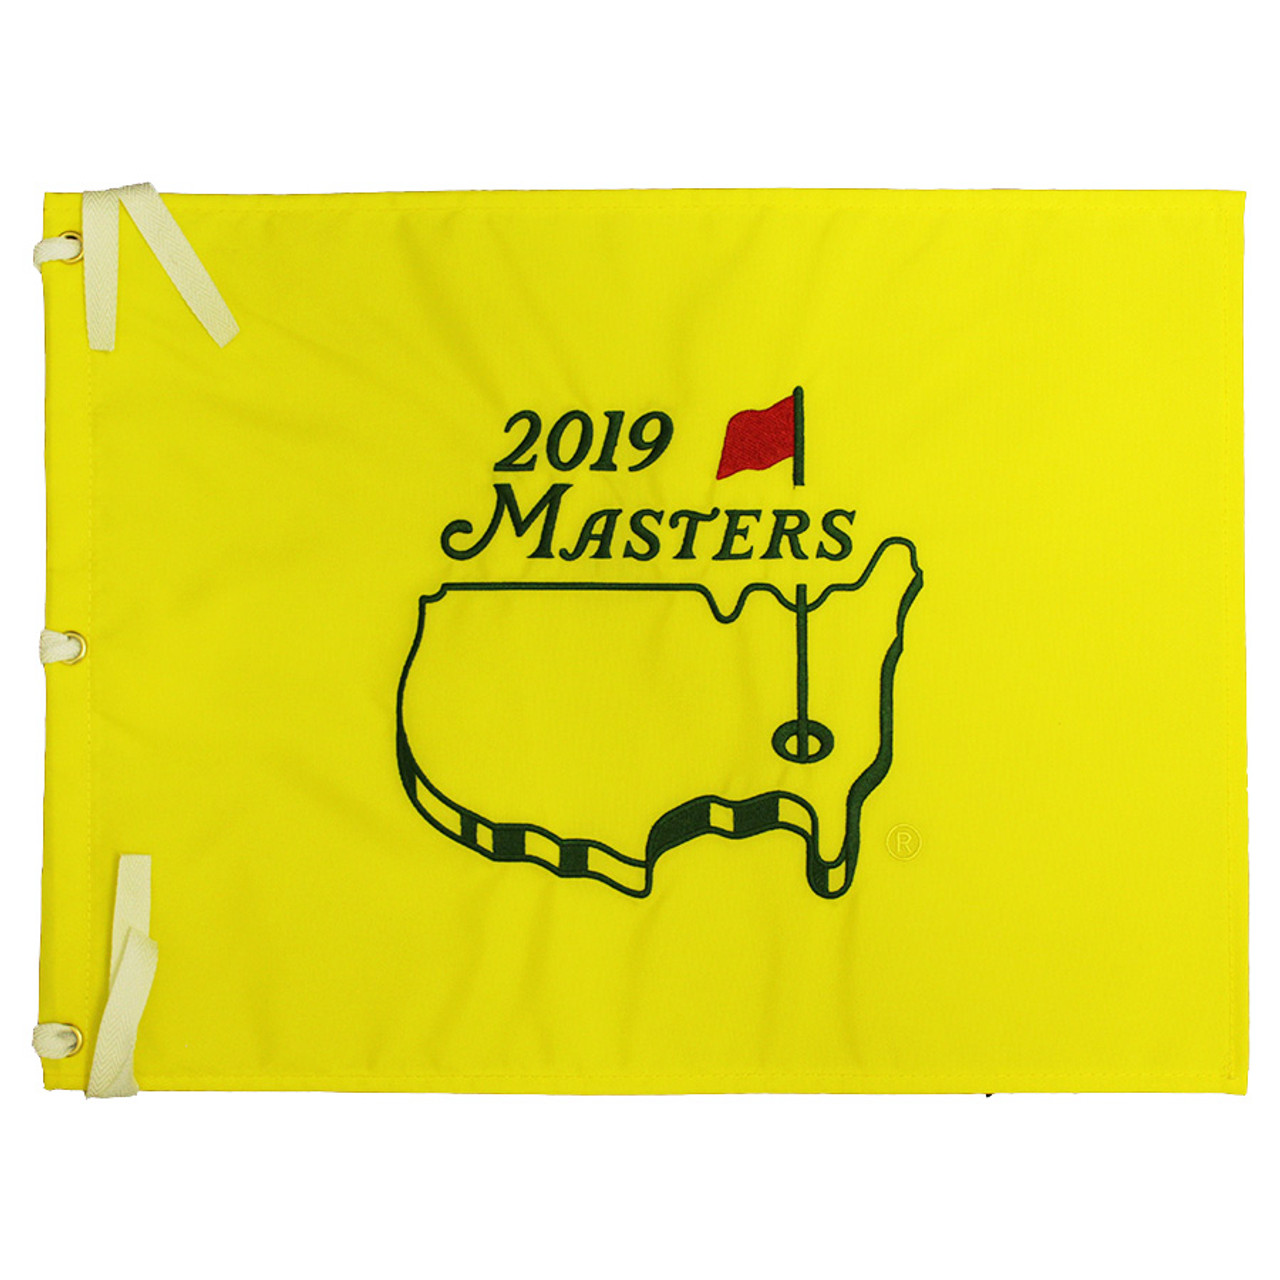 a38b87835 2019 Masters Embroidered Golf Pin Flag - 2019 Dated Masters Pin Flags